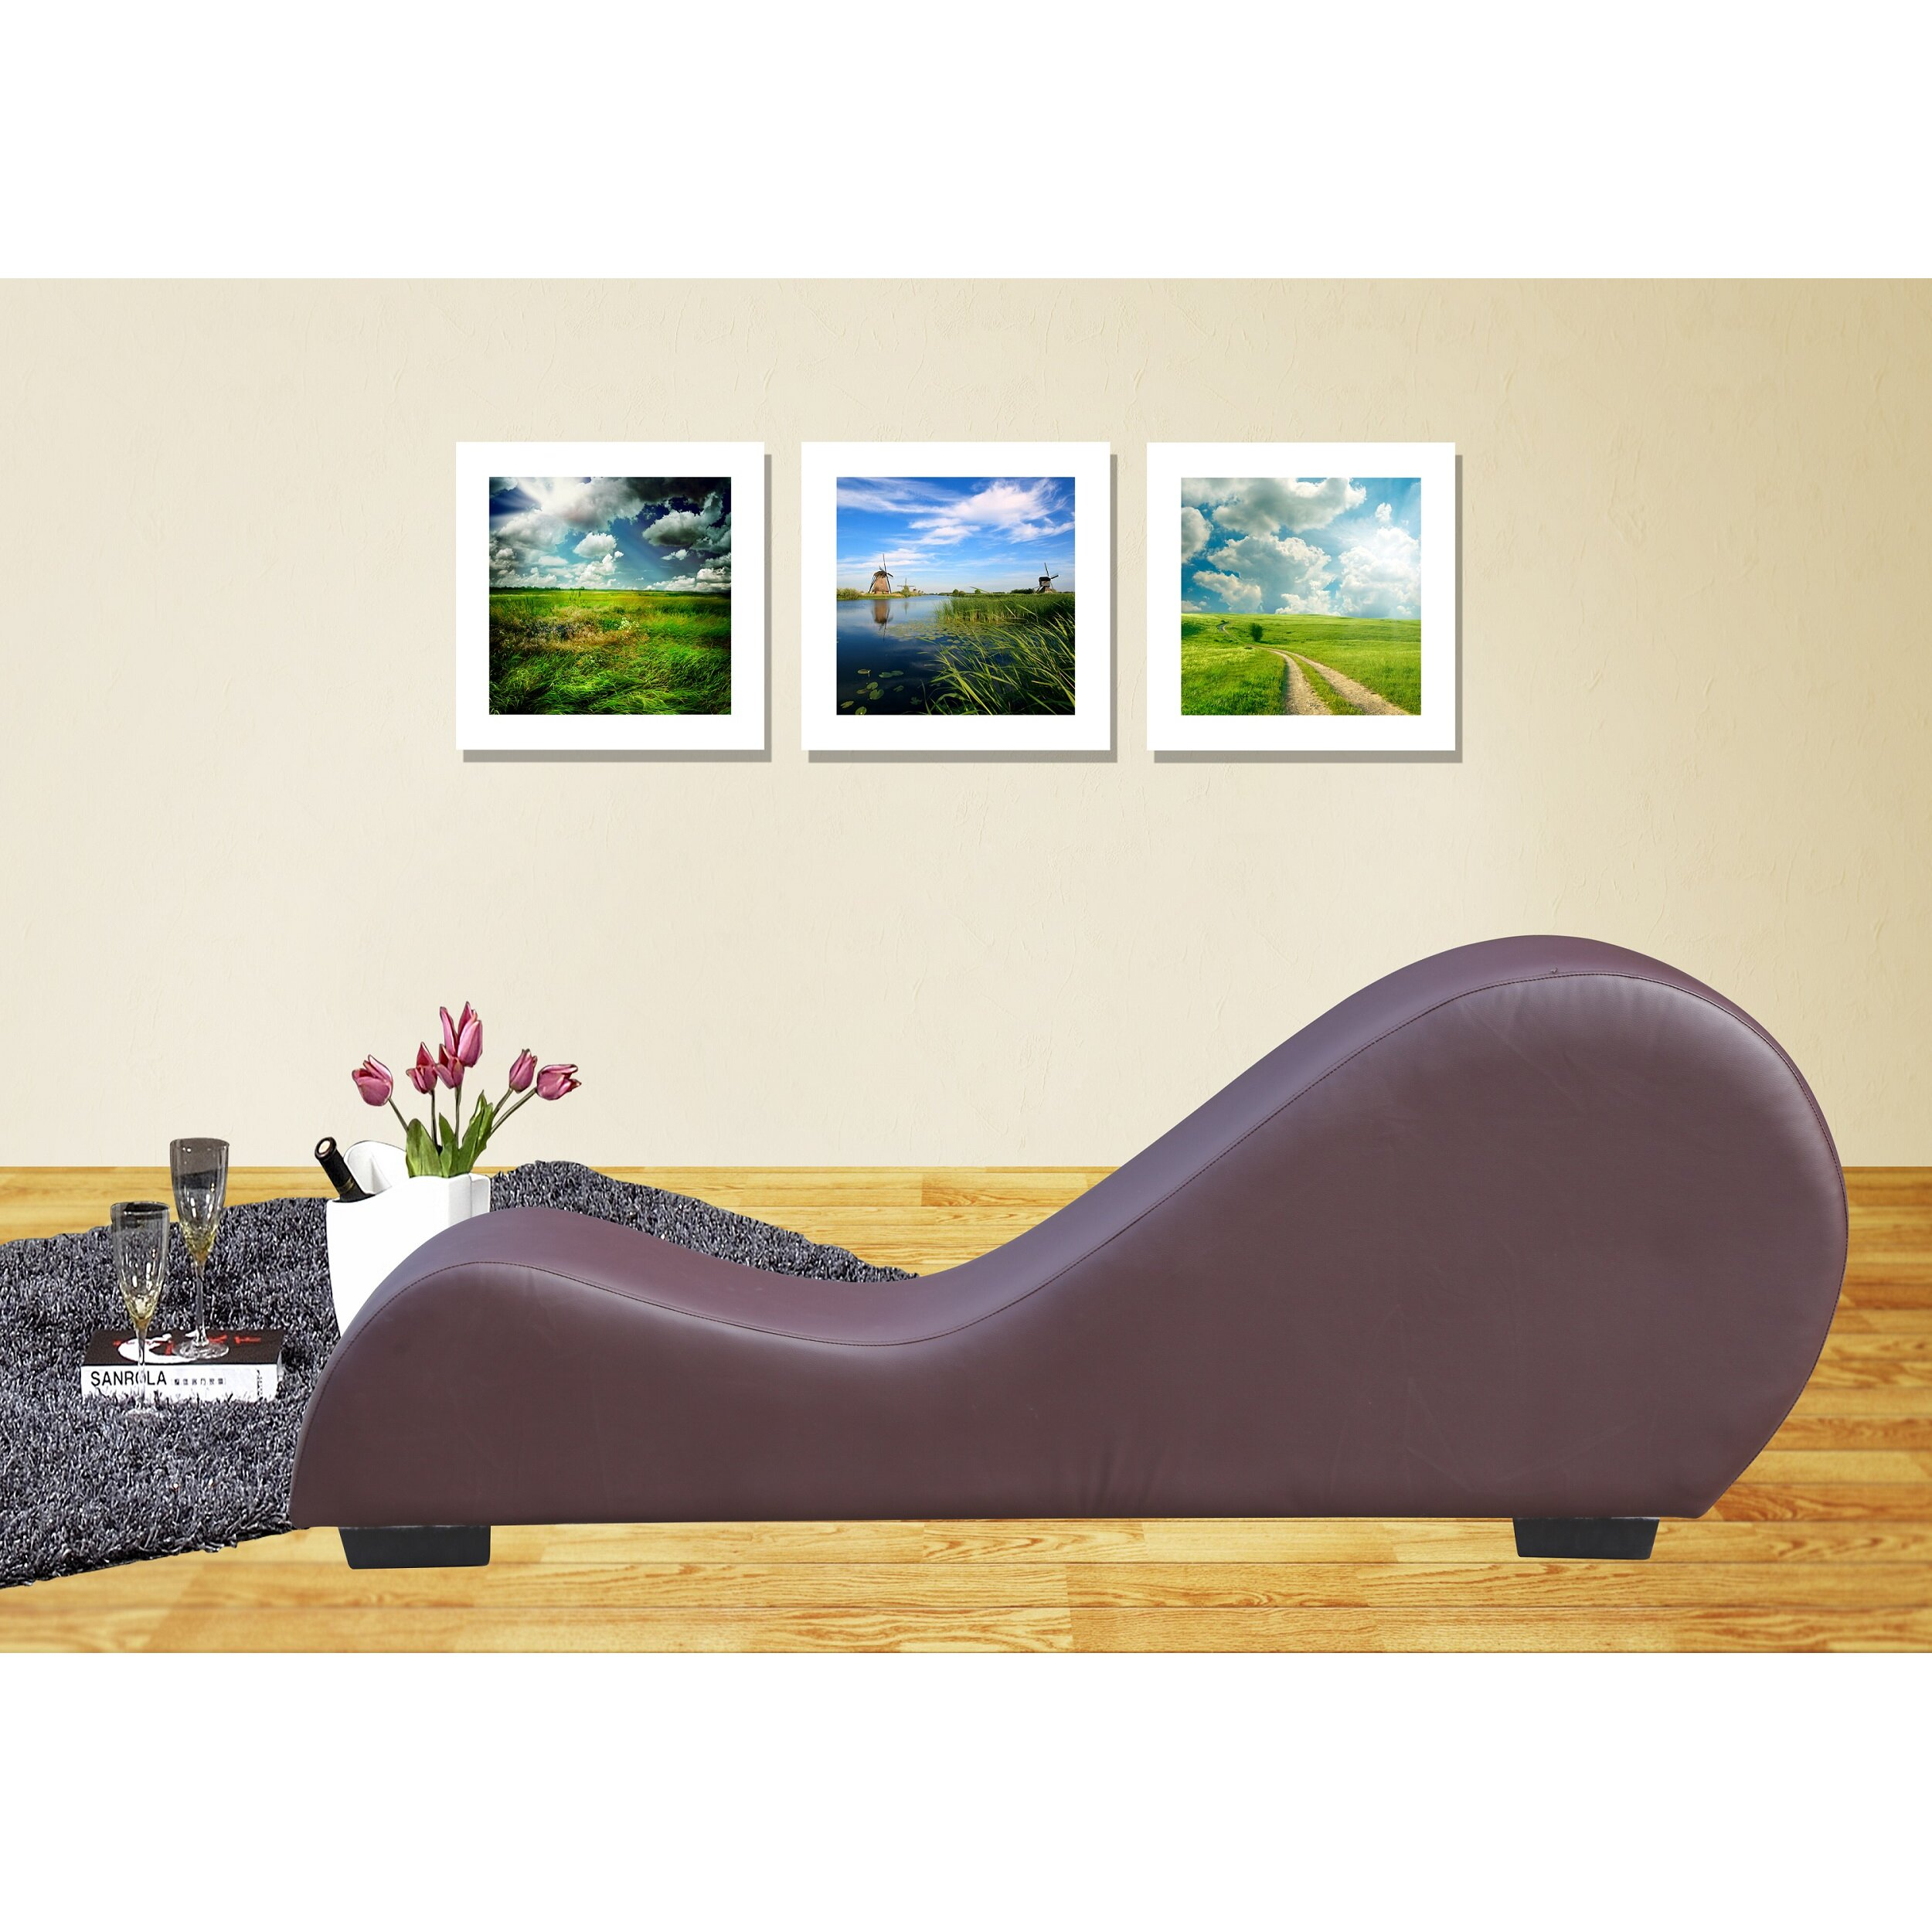 Container yoga chaise lounge reviews wayfair for Chaise yoga